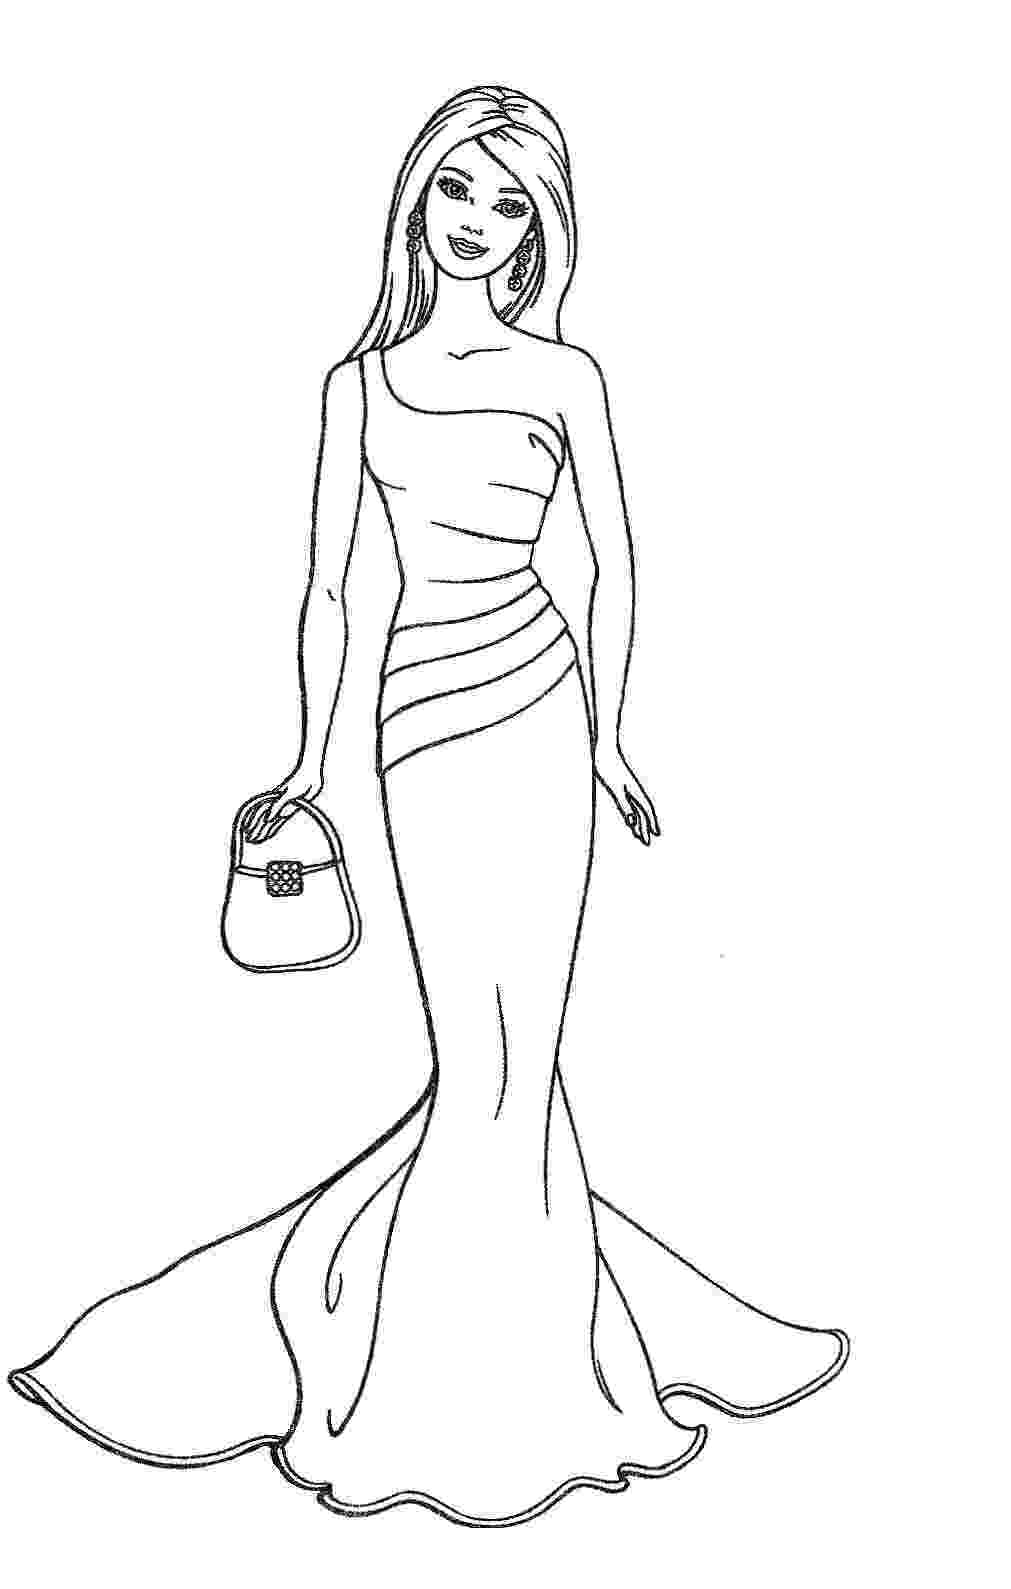 barbie print out coloring pages barbie to print barbie kids coloring pages barbie coloring pages out print